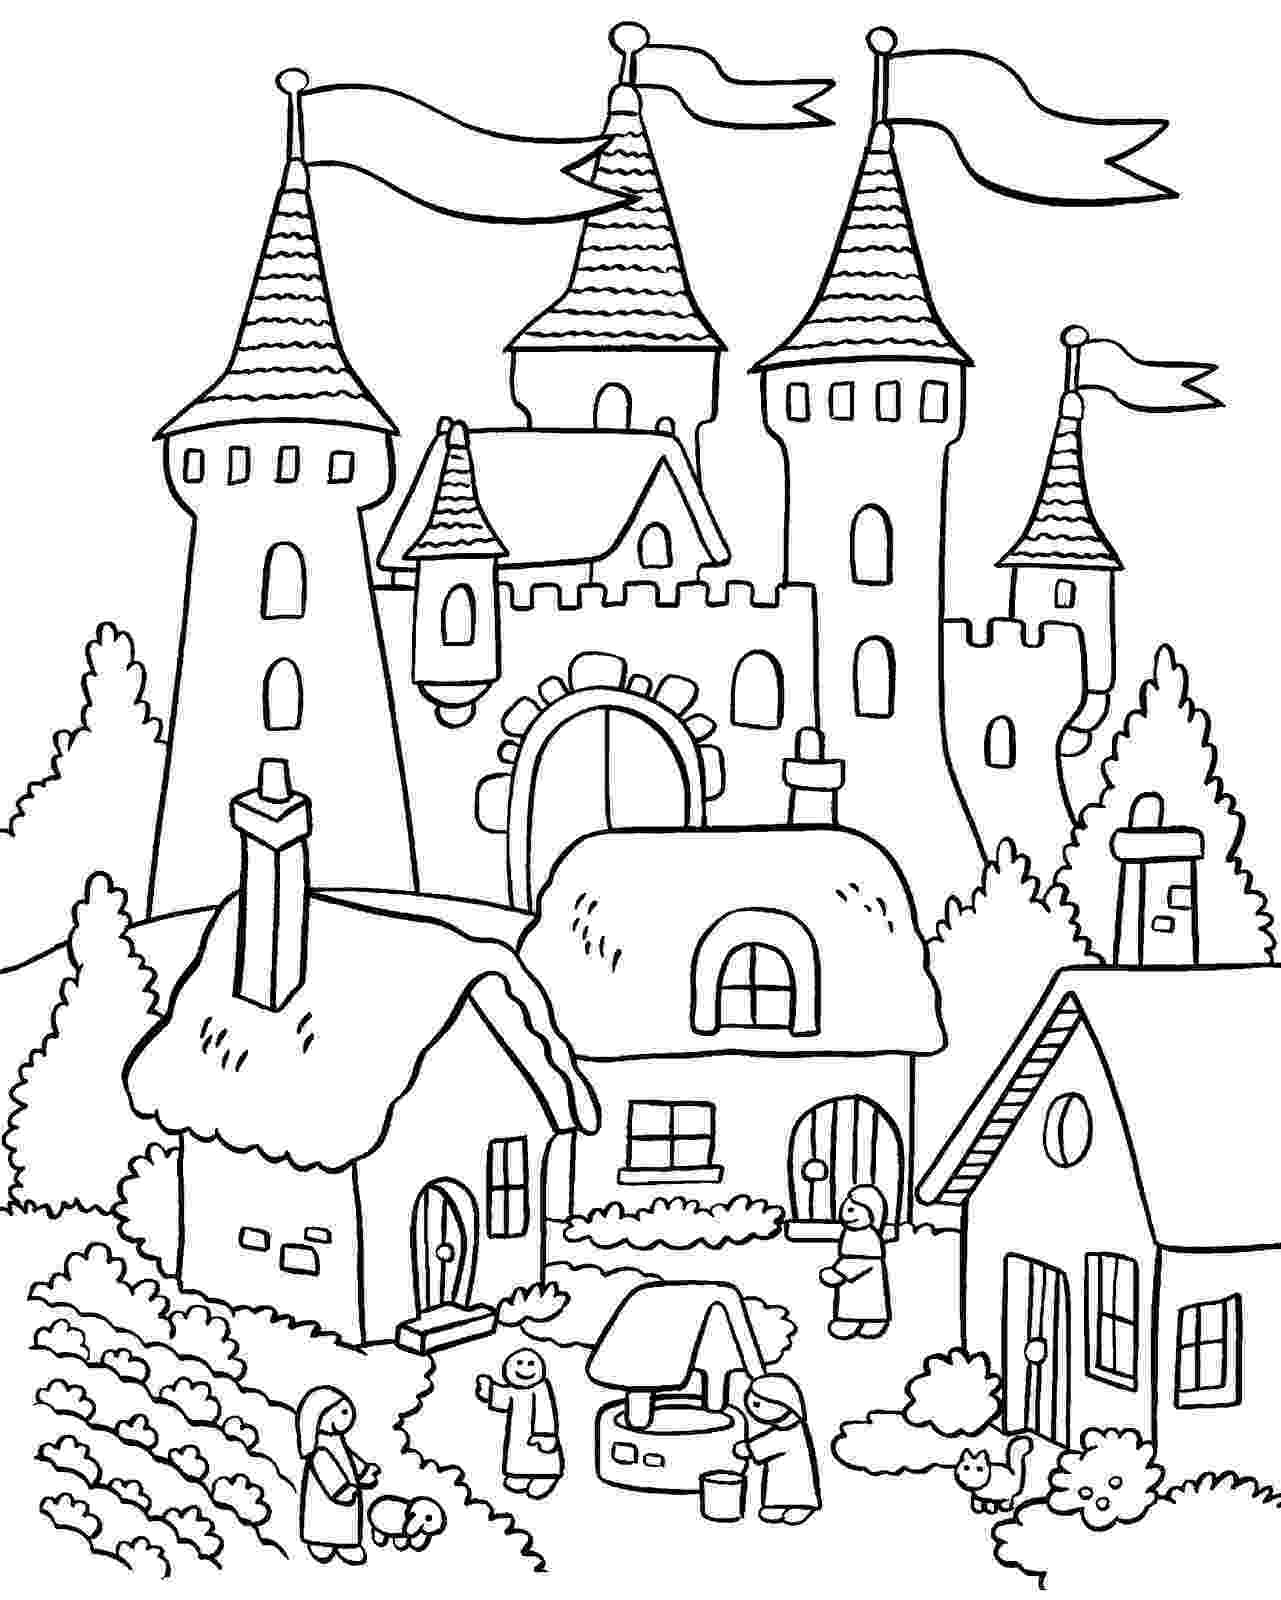 home coloring page home coloring pages best coloring pages for kids home coloring page